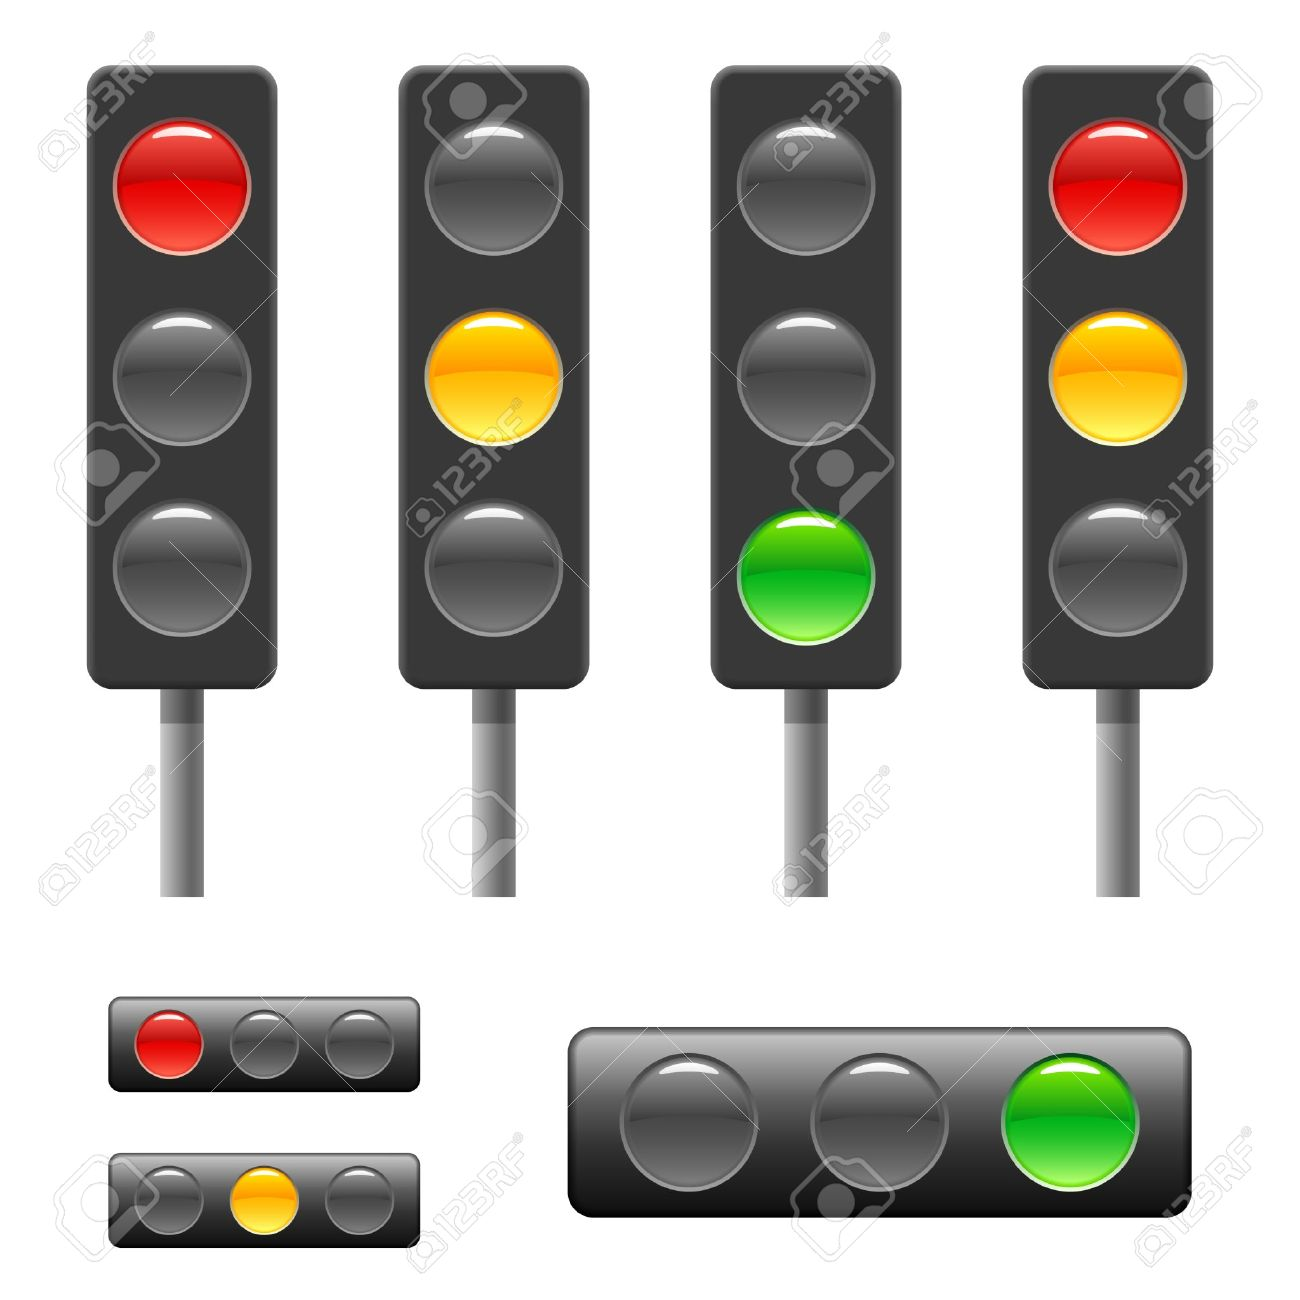 project traffic light Creating, sharing and celebrating the world's visual language.